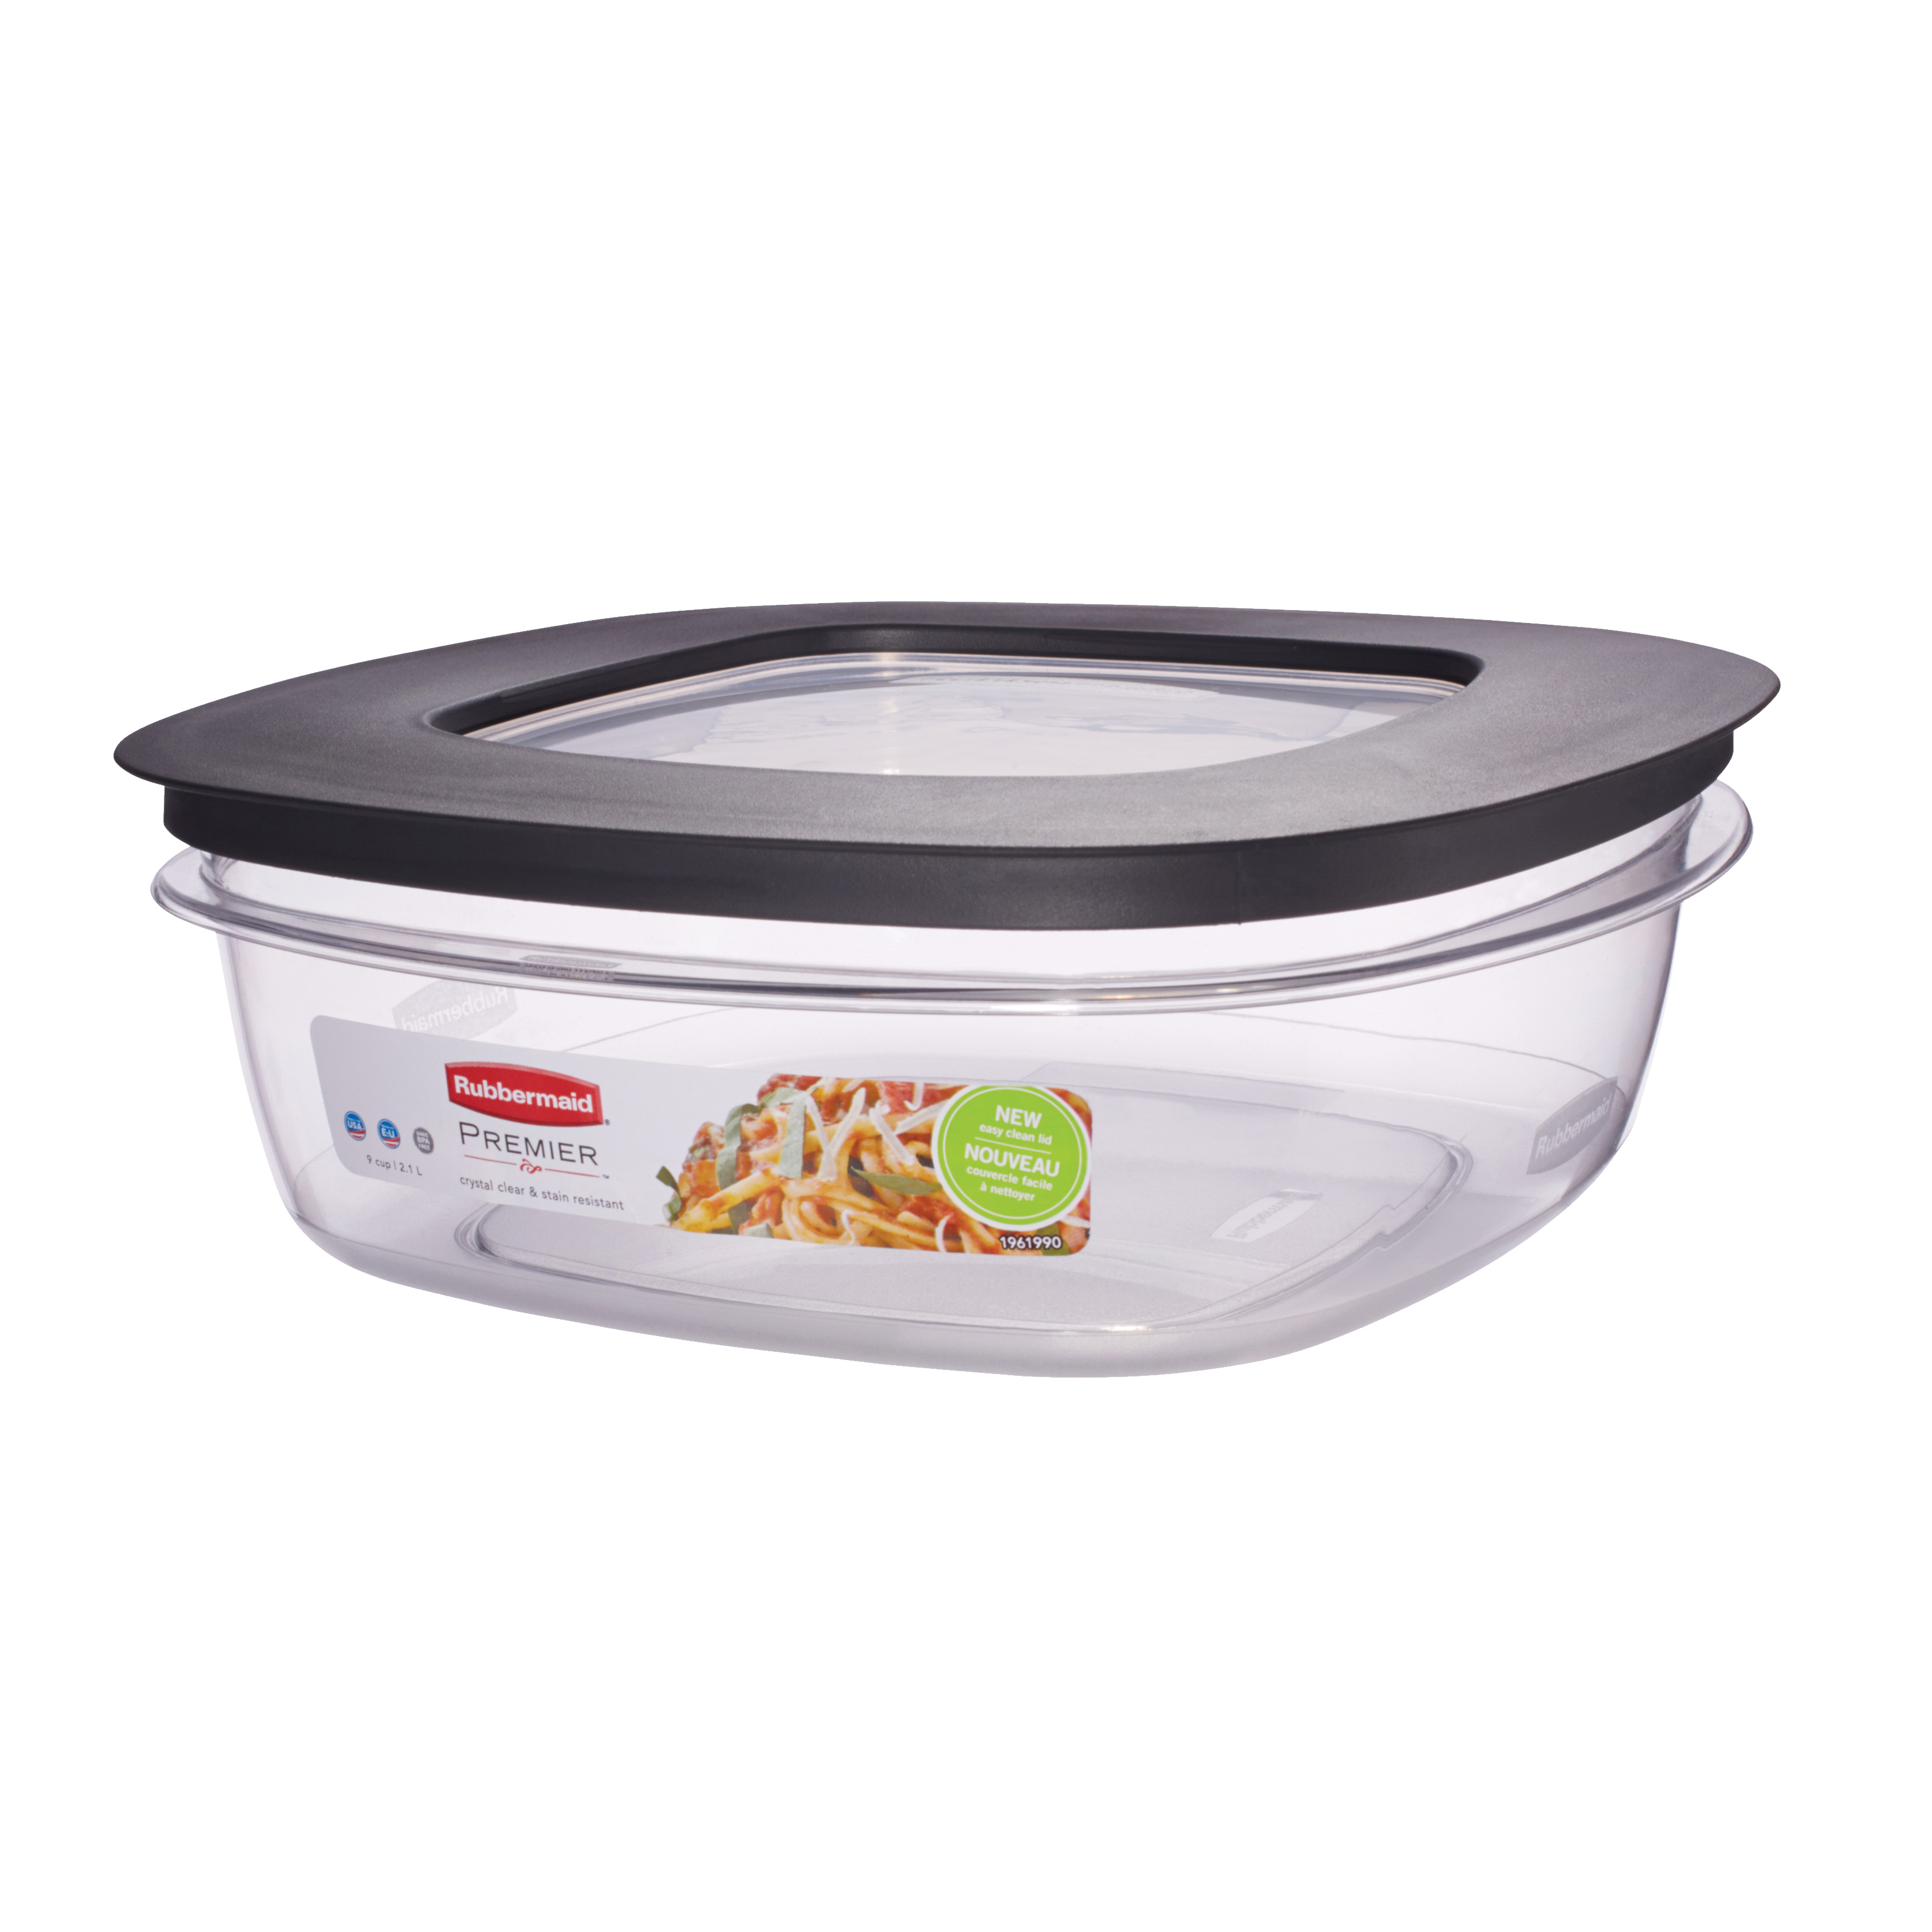 Picture of Rubbermaid Take Alongs 1937692 Food Storage Container, 9 Cups Capacity, Clear, 11 in L, 9 in W, 9 in H